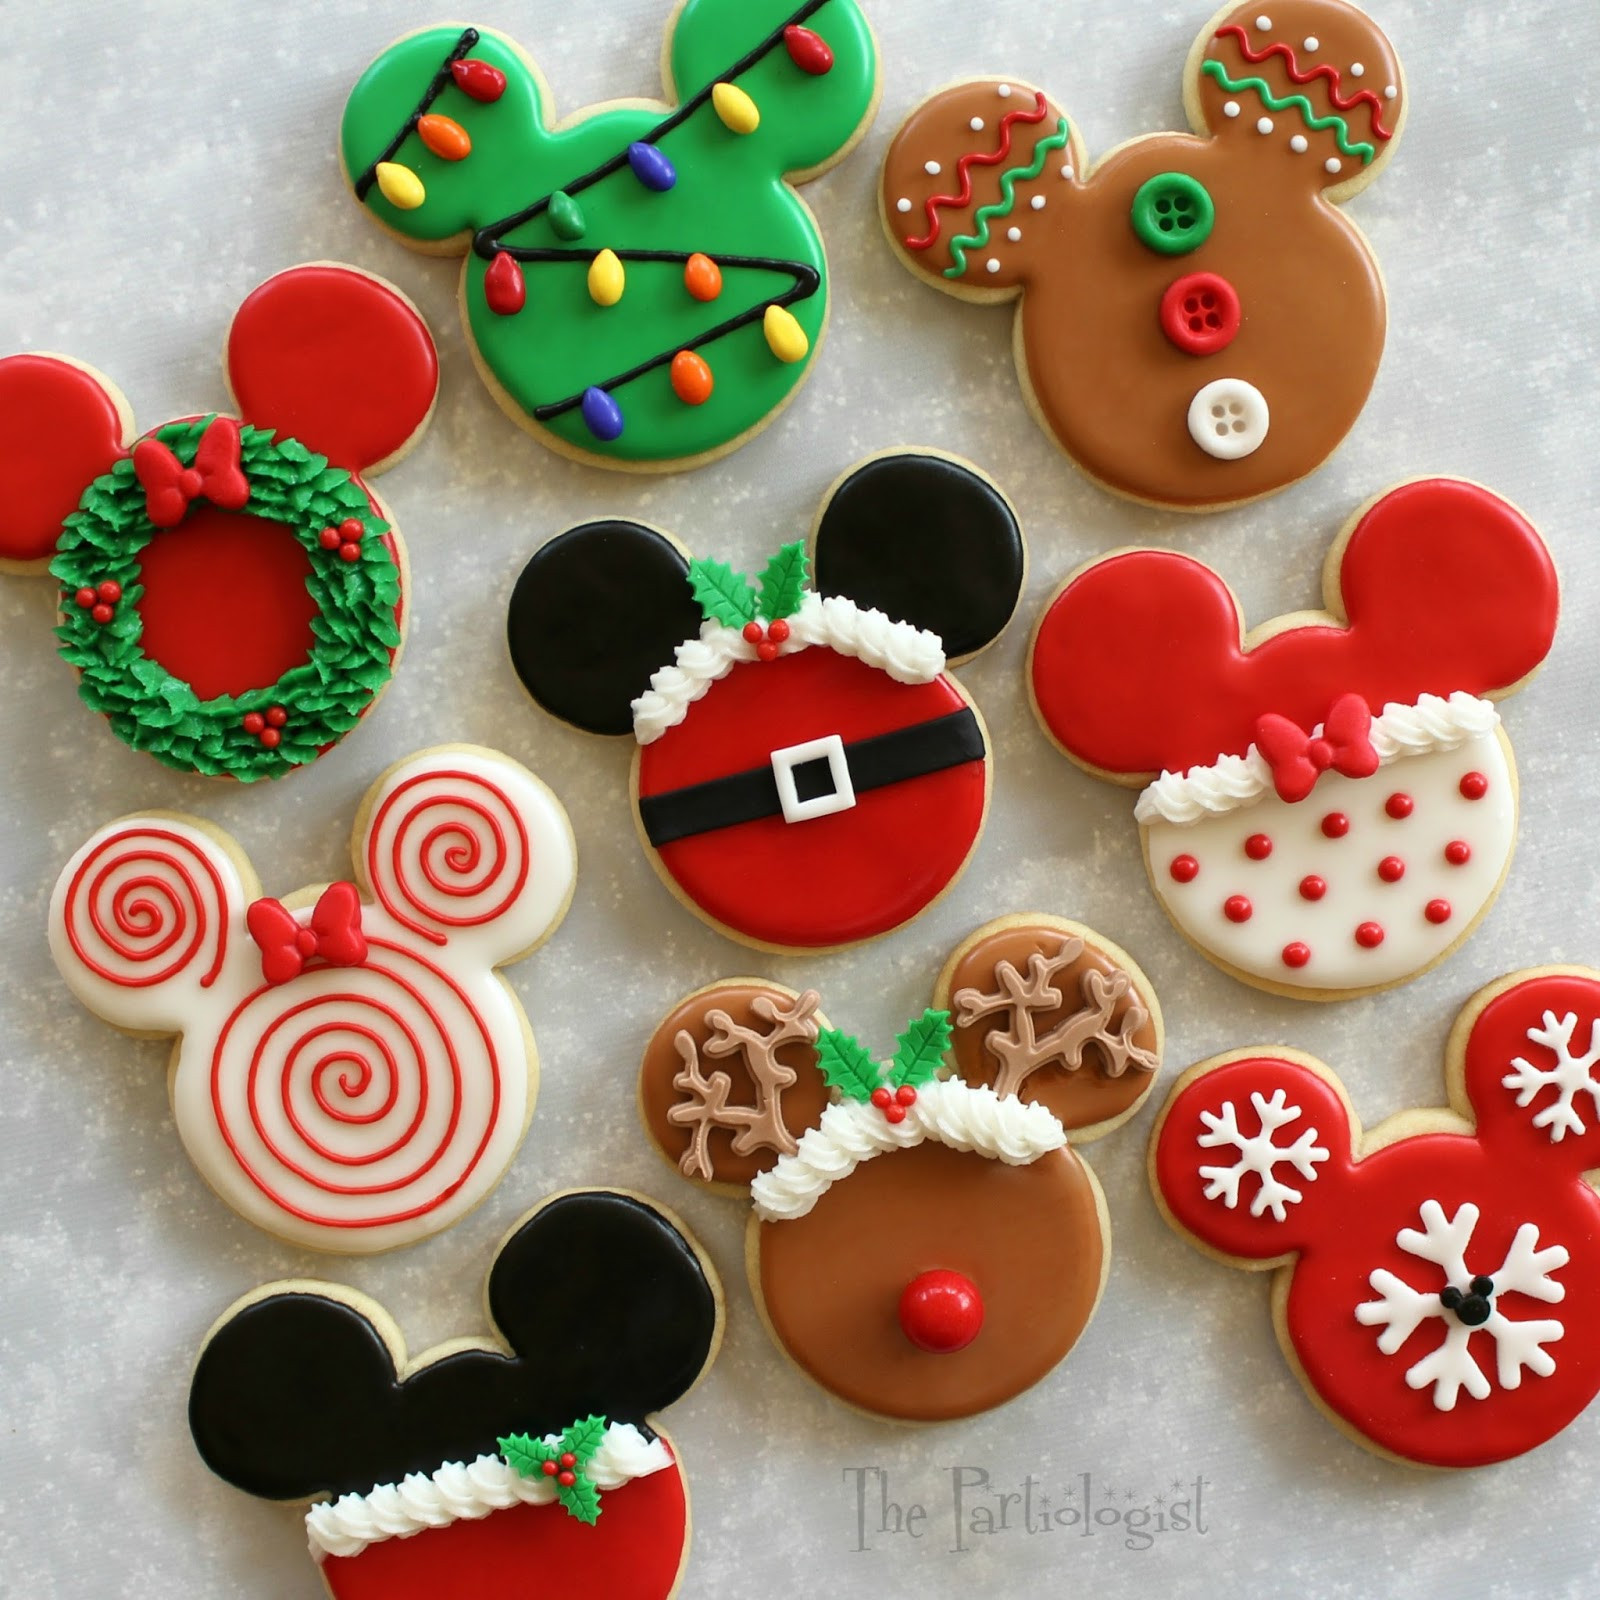 Christmas Cookies Ideas  The Partiologist Disney Themed Christmas Cookies